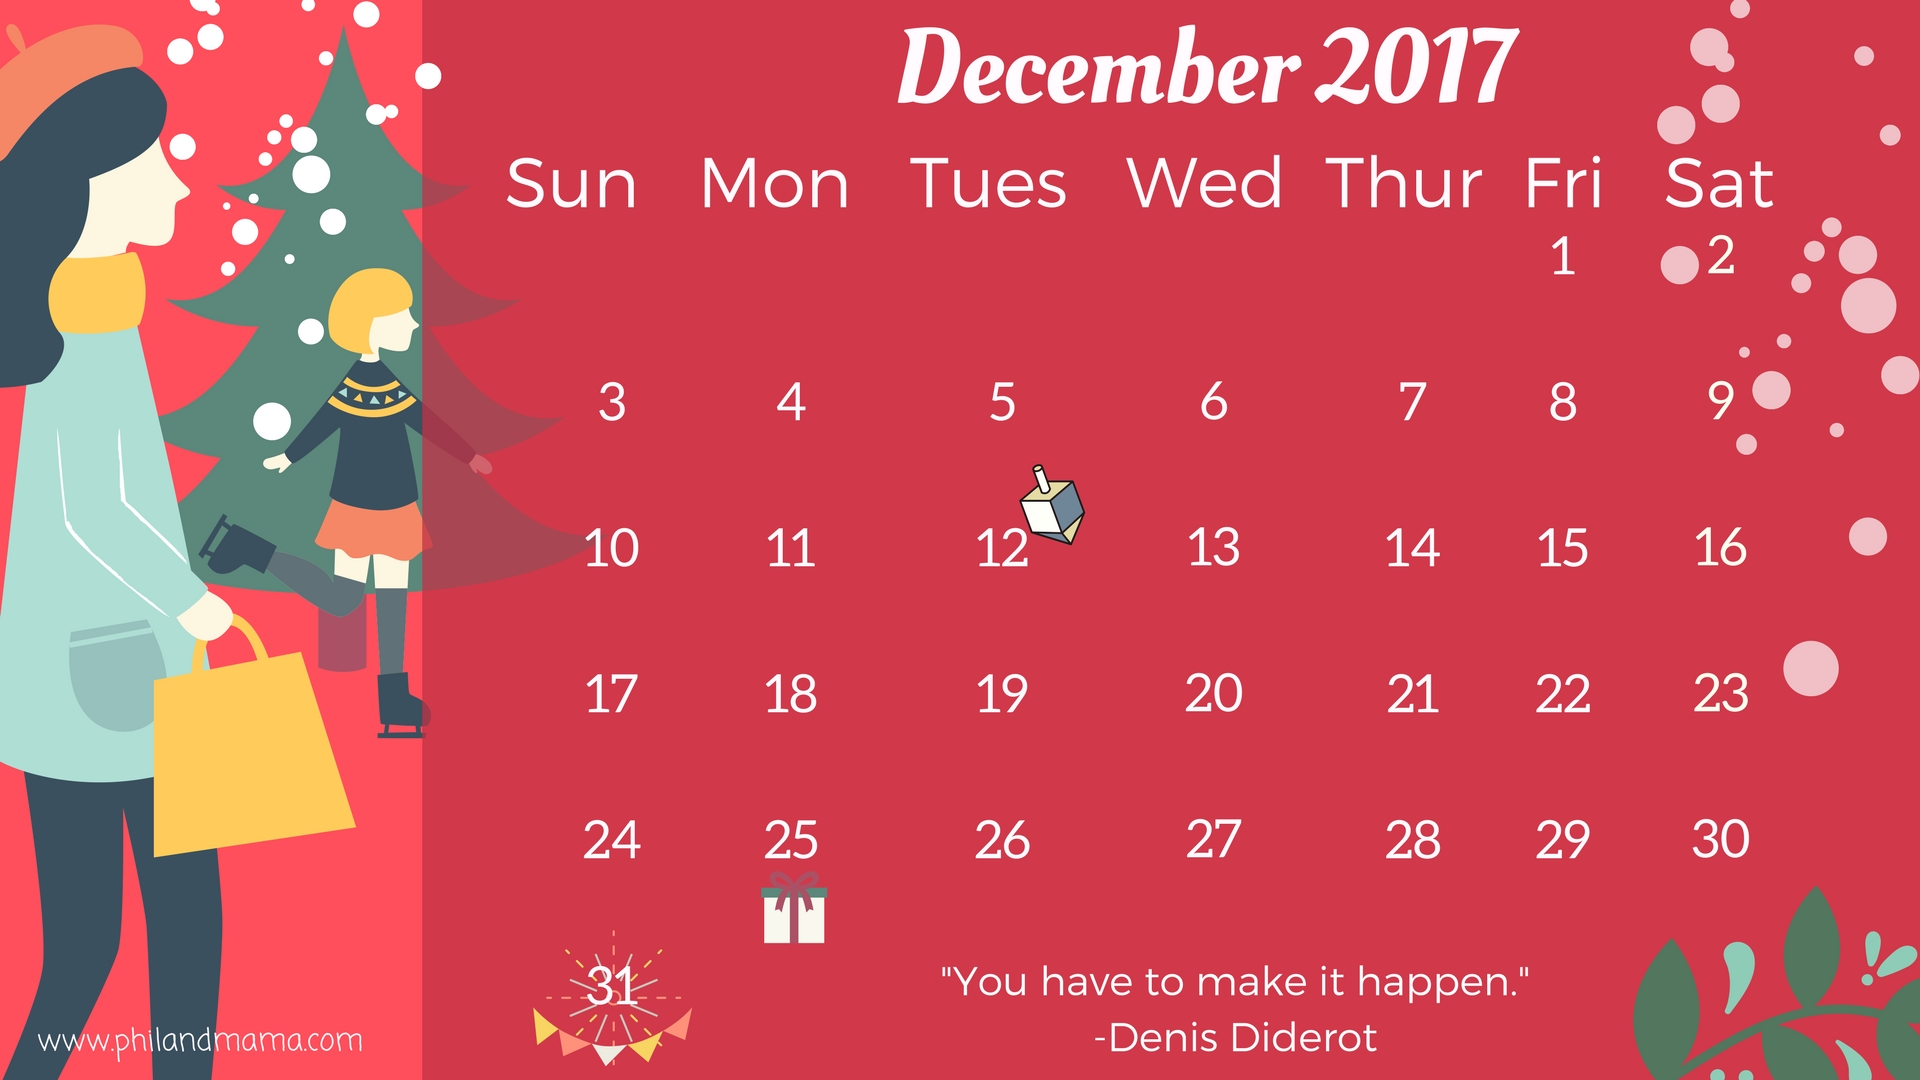 Holiday Calendar Bc 2016 Holidays And Observances In Canada In 2016 Lots Of Beautiful Free Printable Calendars For 2017 With